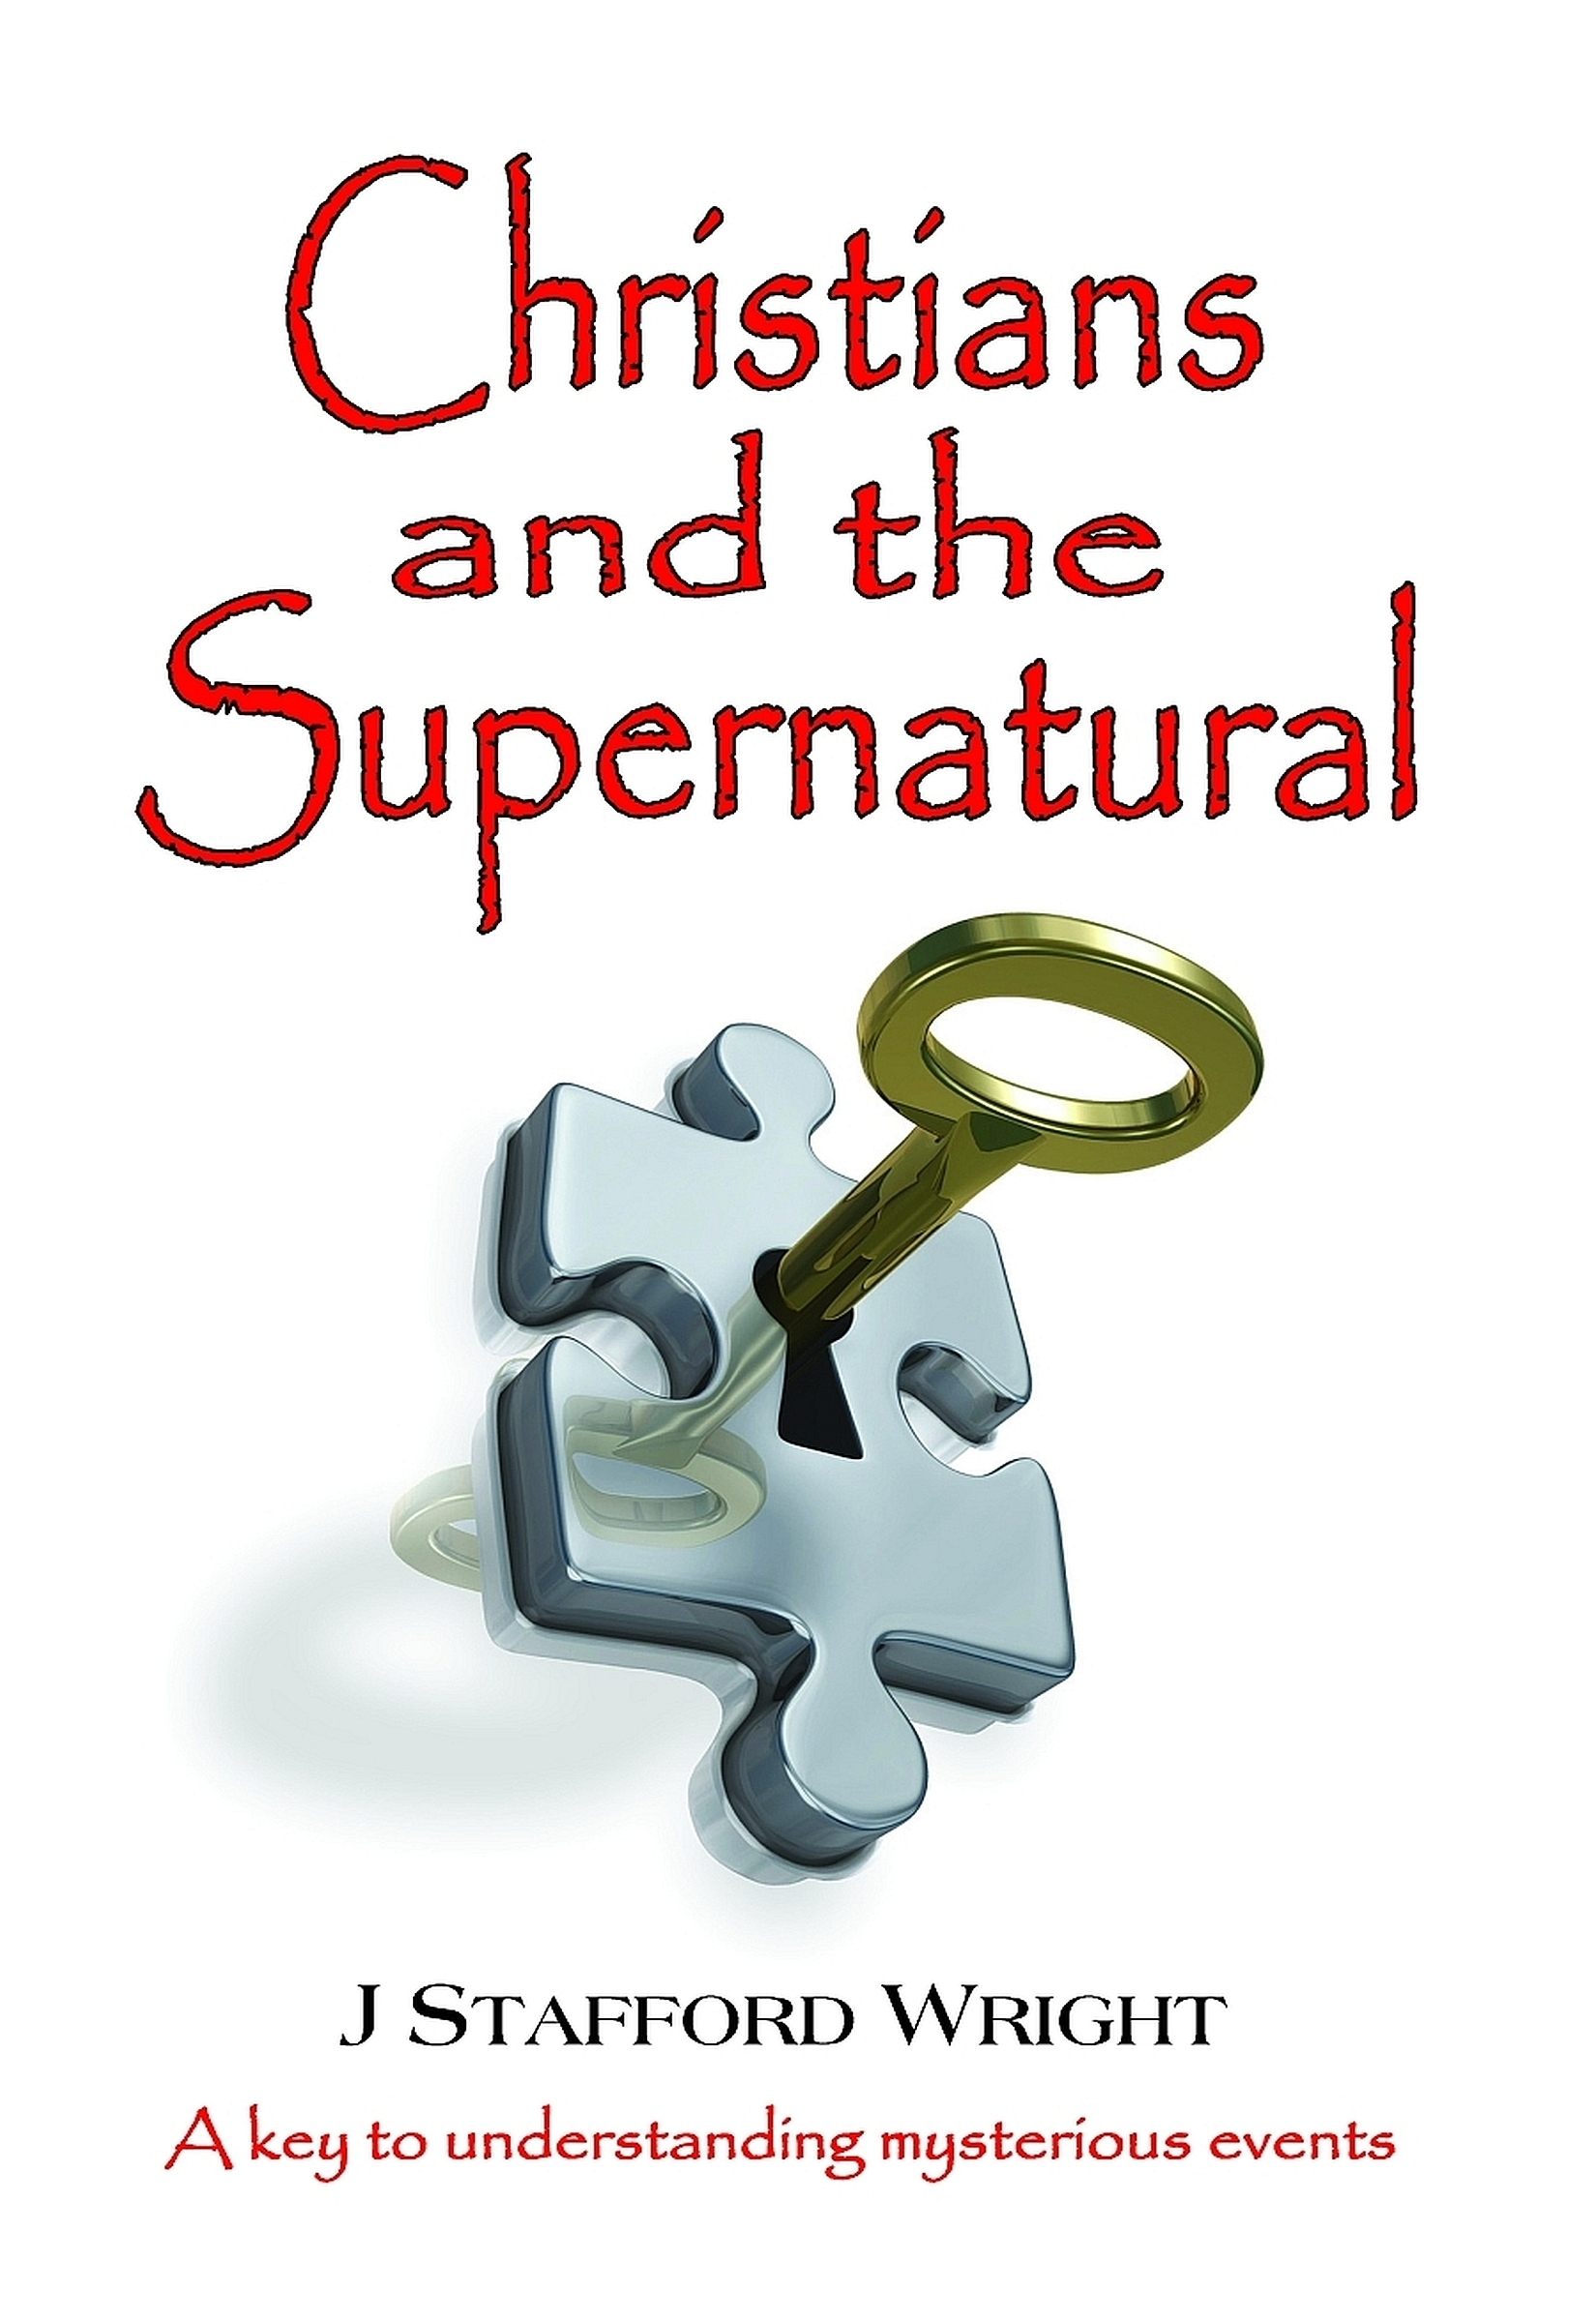 Christians and the Supernatural J Stafford Wright